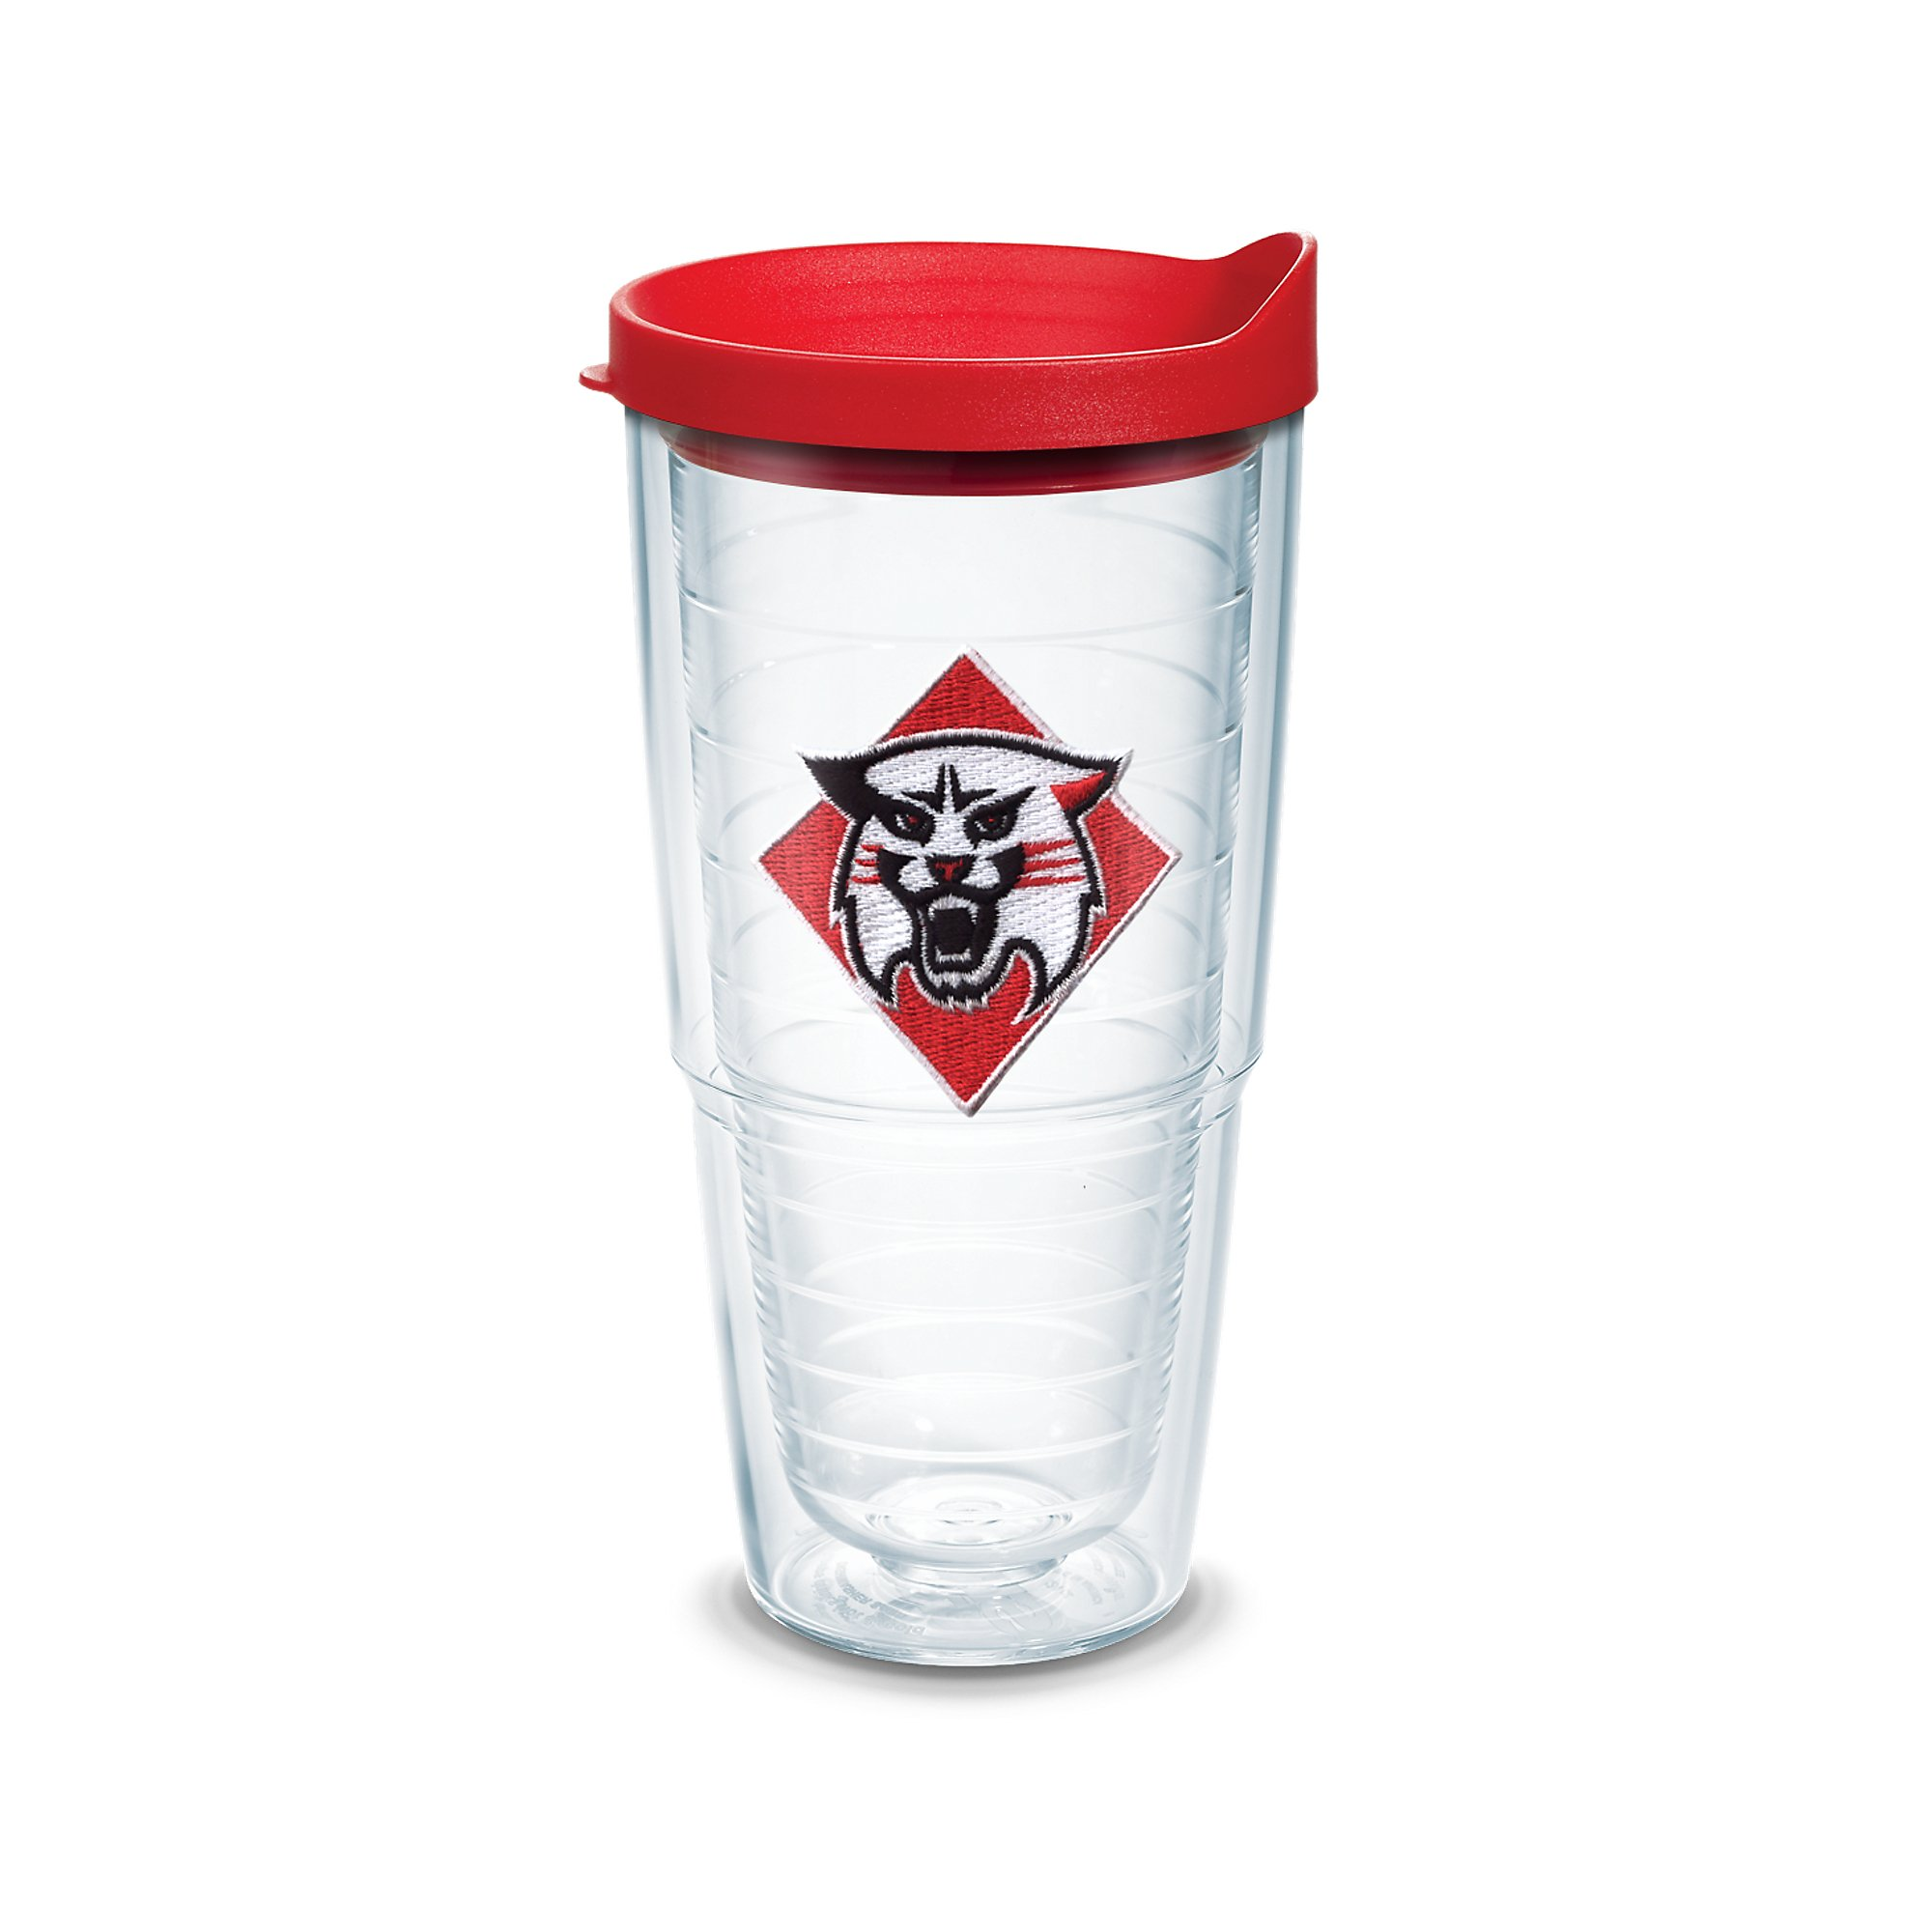 Tervis 1078572 Davidson College Emblem Individually Boxed Tumbler with Red lid, 24 oz, Clear